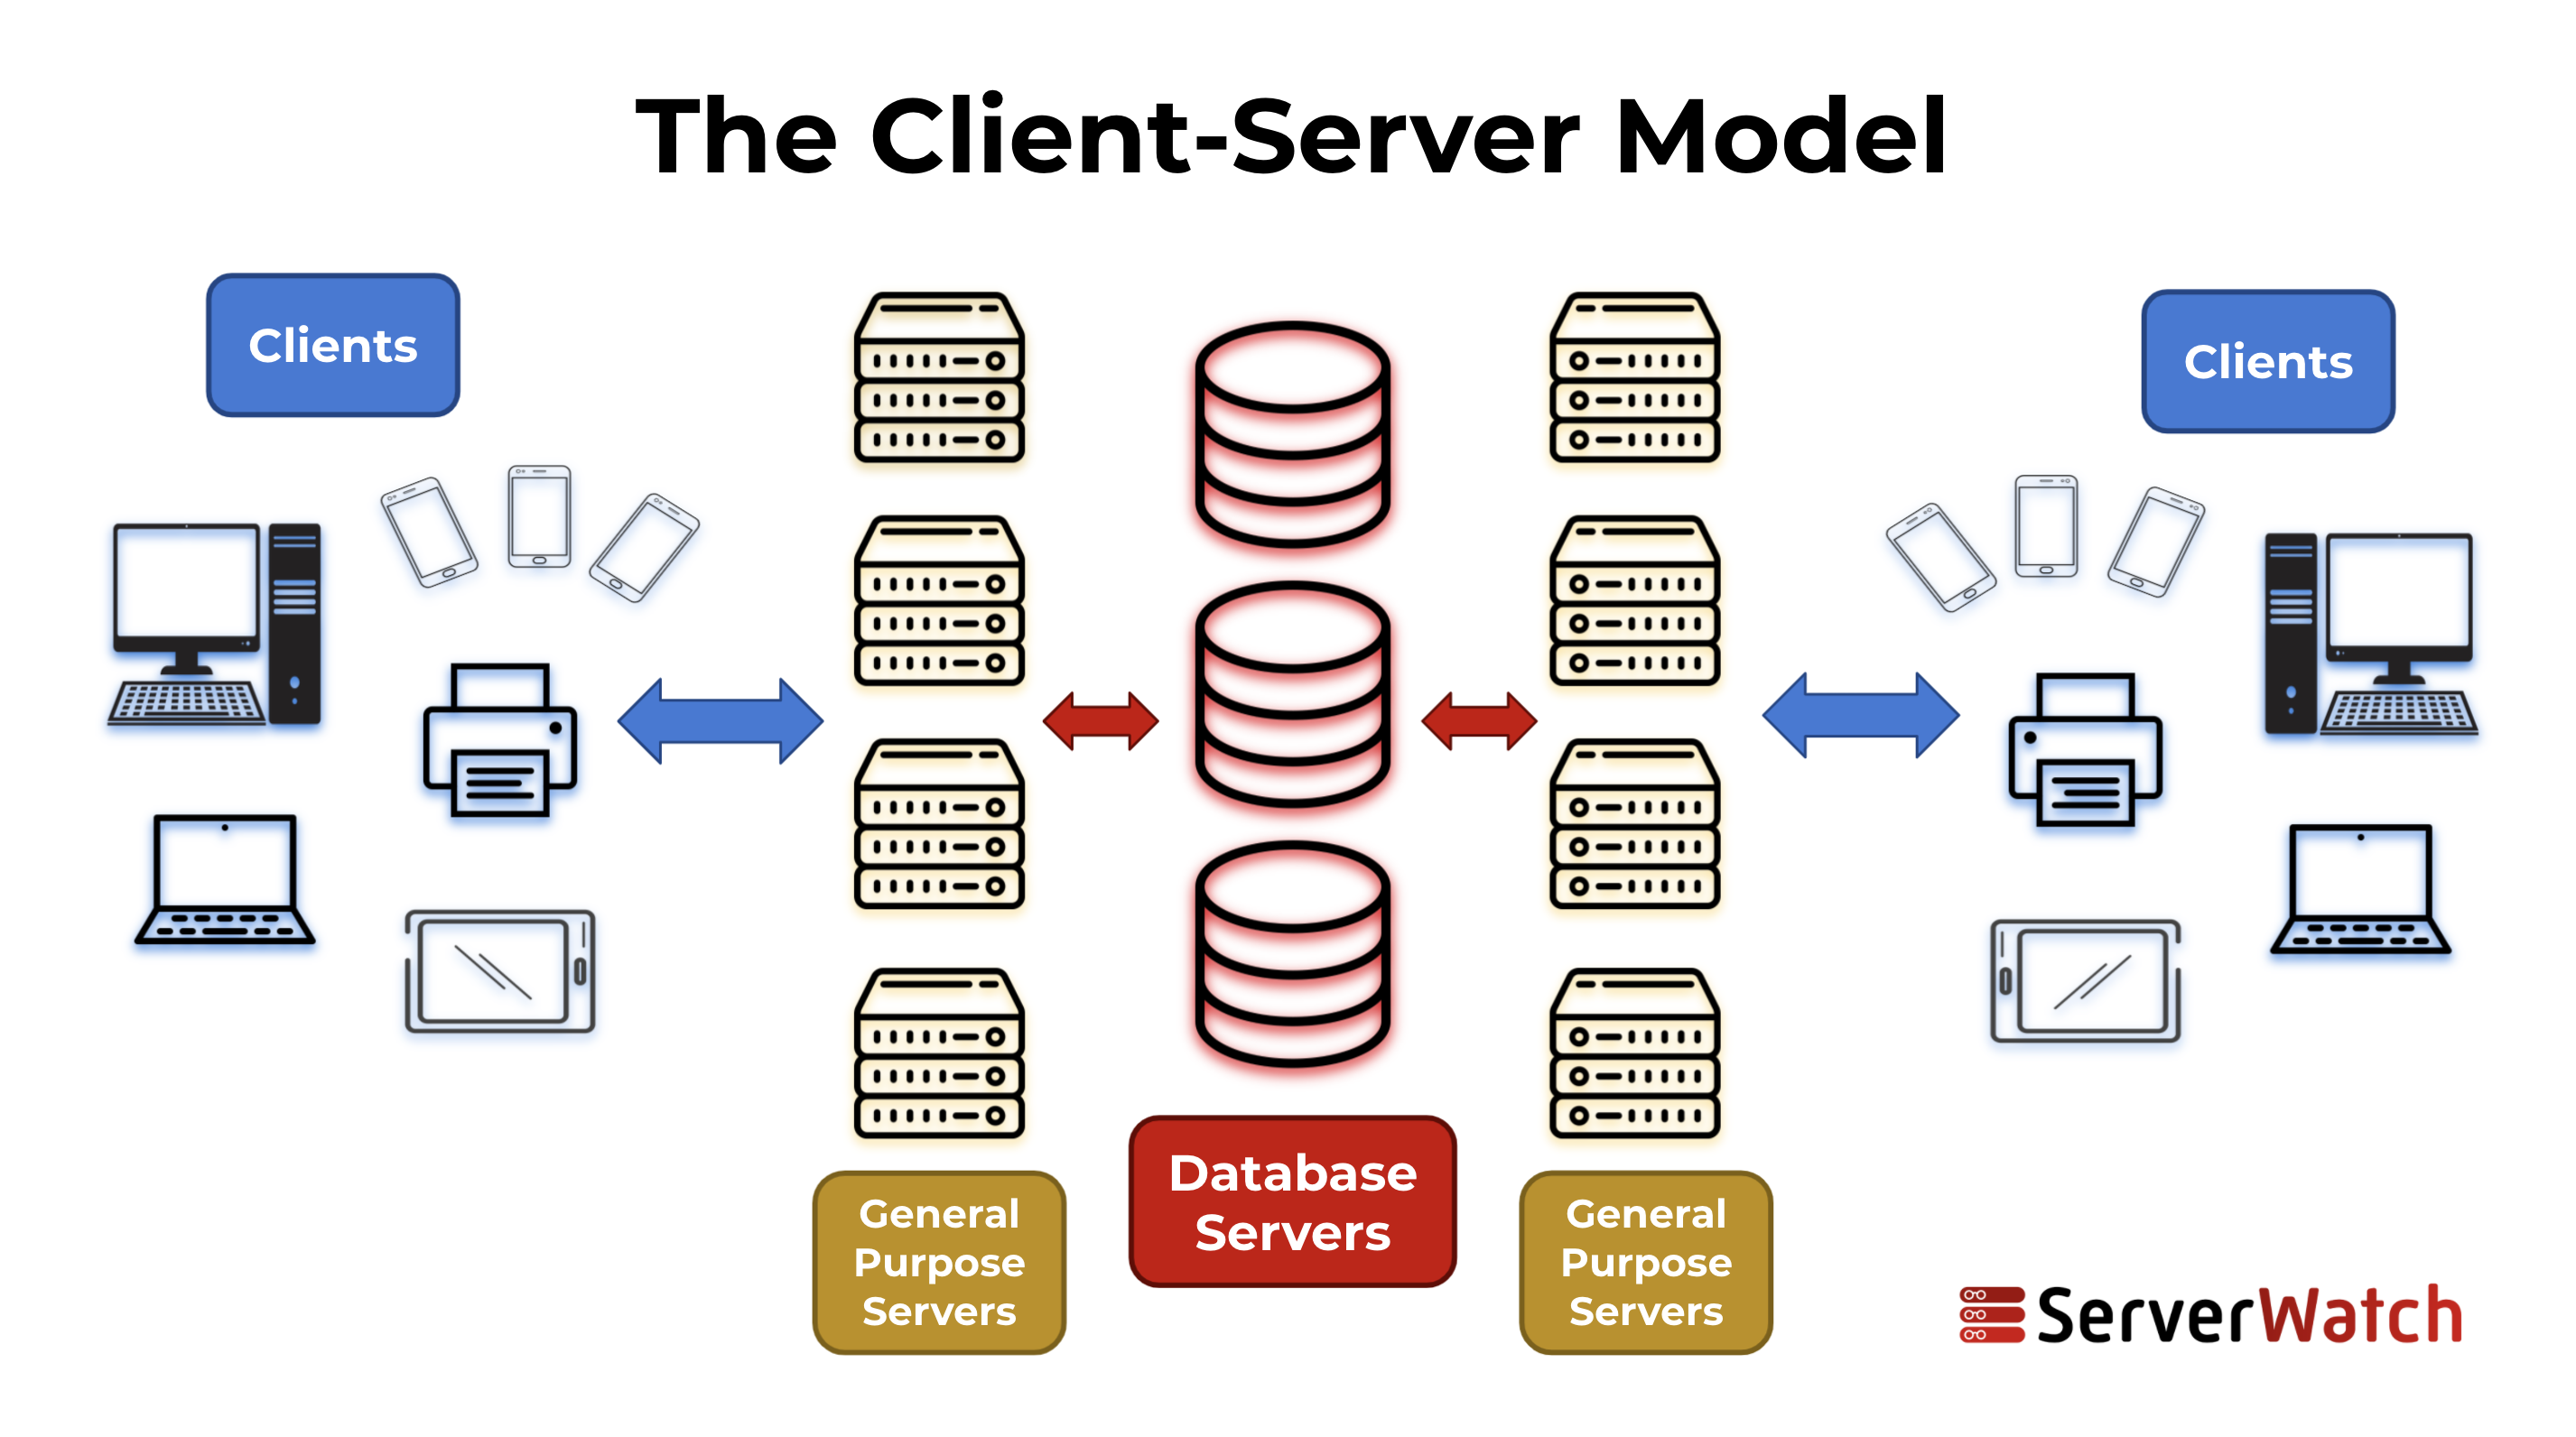 A graphic image that shows the client-server model where servers use their builds and data resources to serve network devices. Designed by Sam Ingalls.